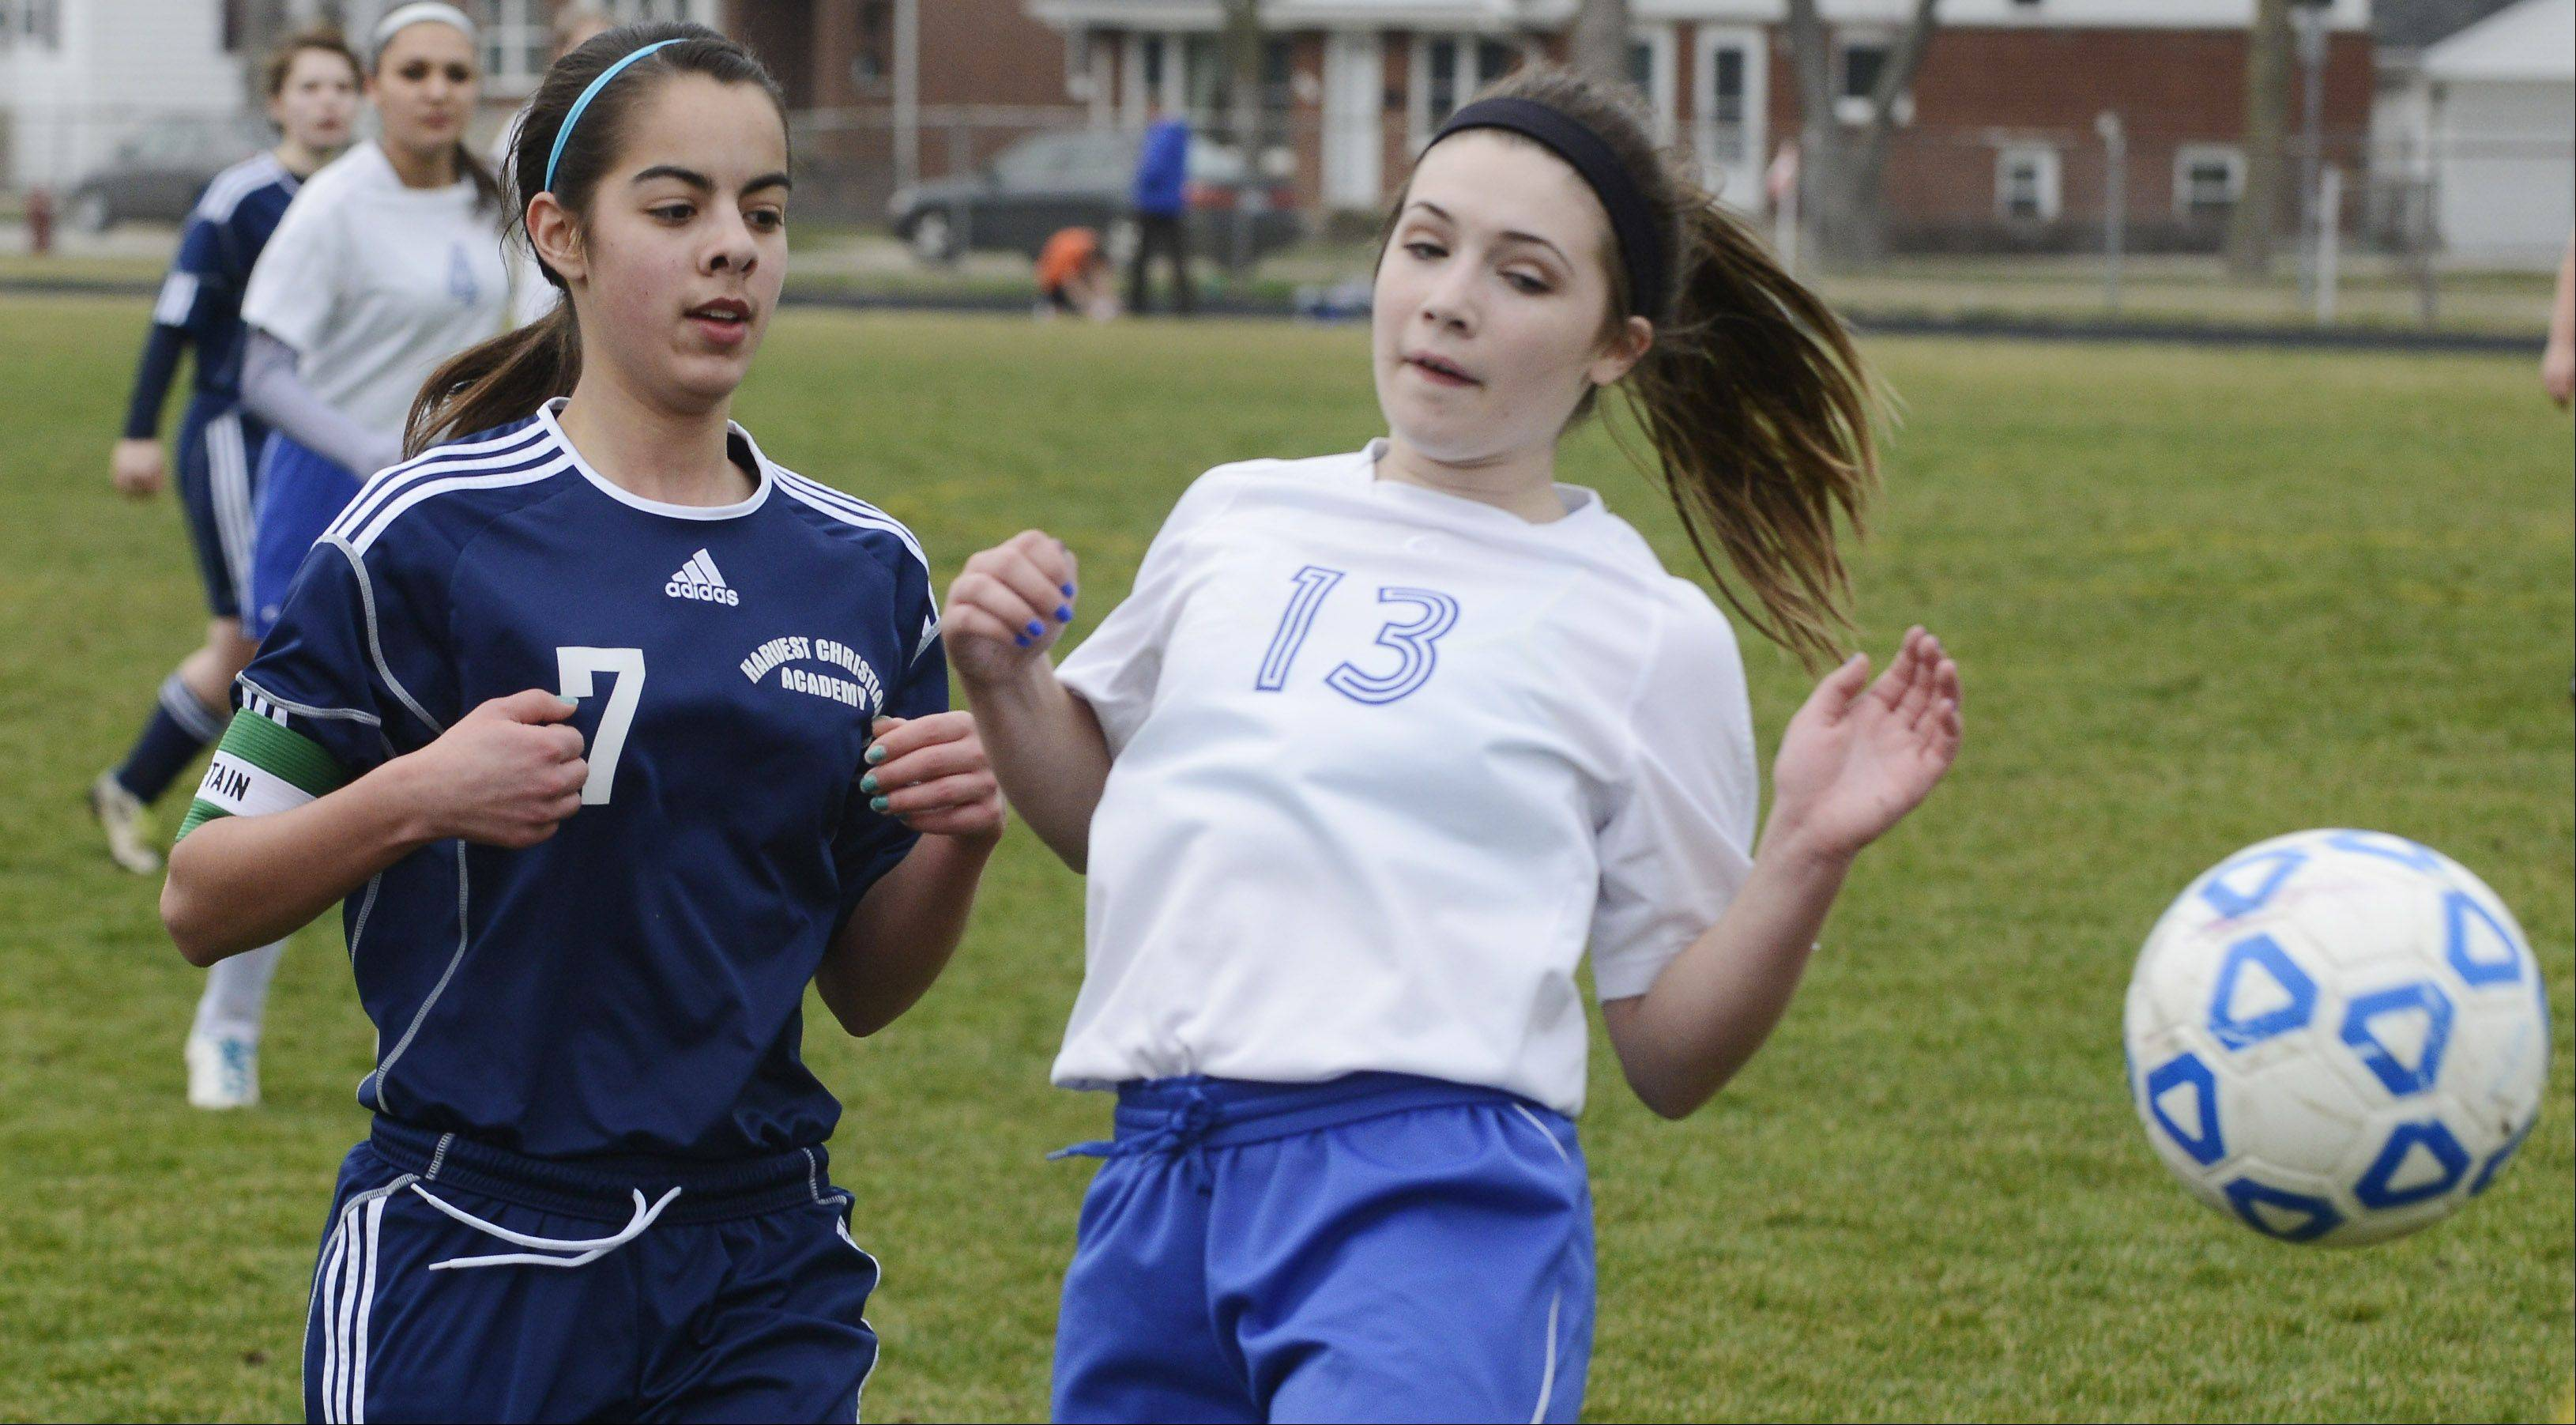 Harvest Christian's Brittany Salazar, left, directs the ball past Christian Liberty's Carly Adelsperger during Tuesday's game in Arlington Heights.